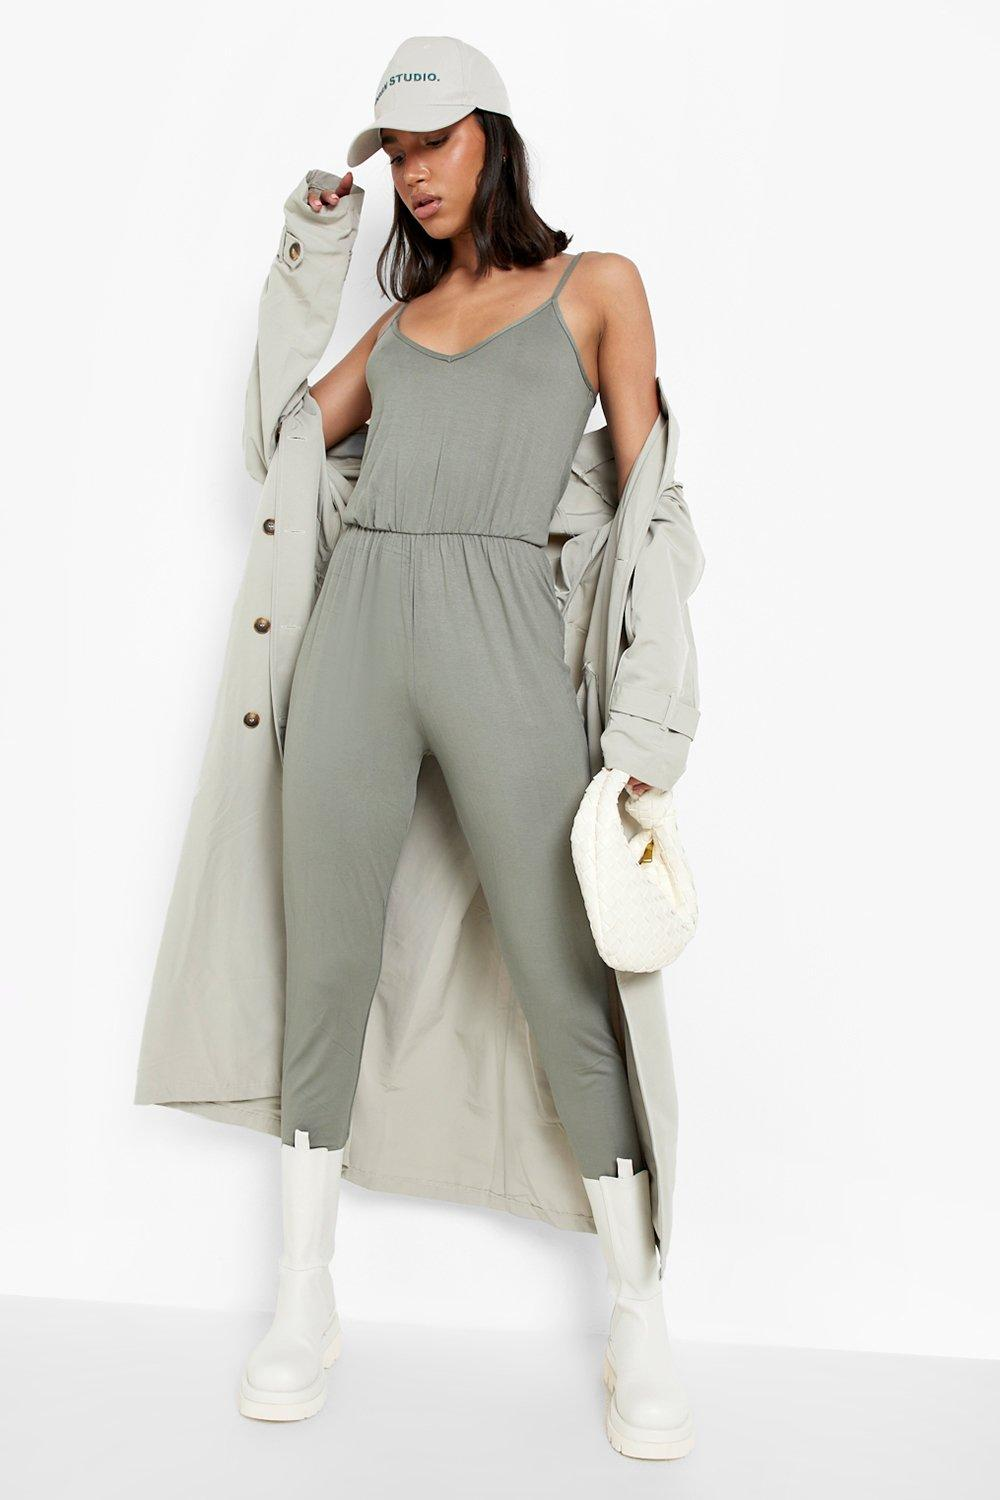 70s Jumpsuit | Disco Jumpsuits, Sequin Rompers Womens Basic Cami Jumpsuit - Green - 14 $12.00 AT vintagedancer.com